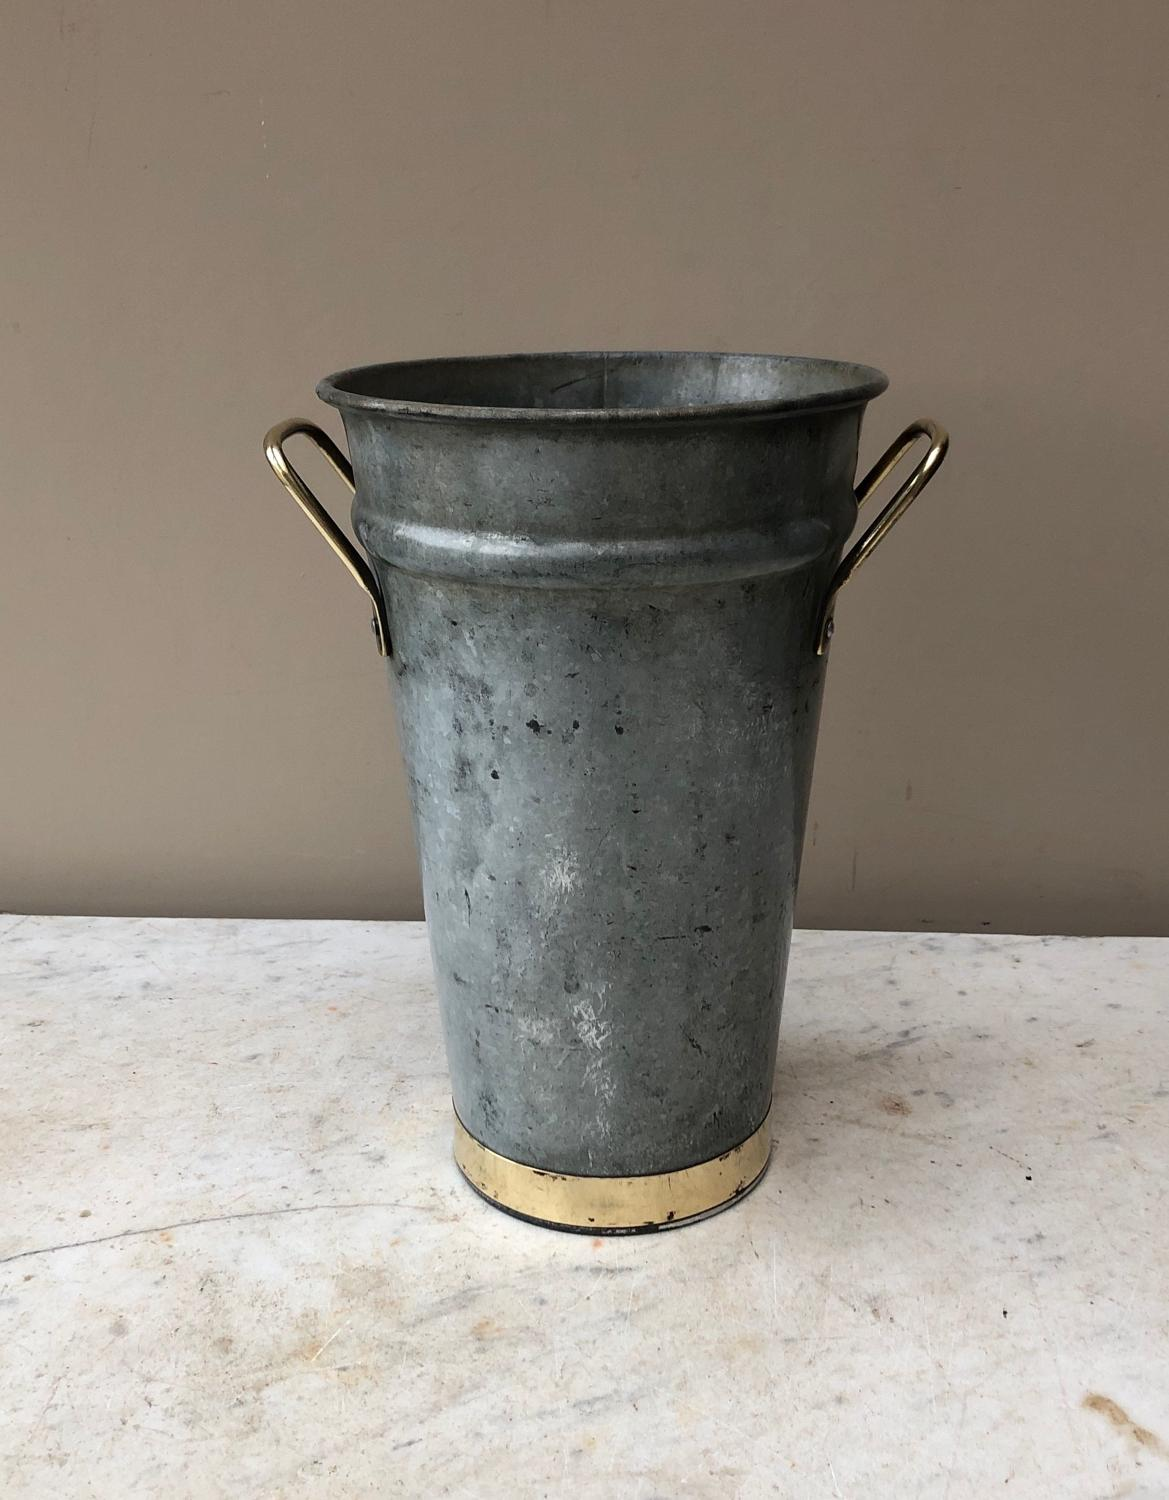 Early 20th Century Florists Vase with Brass Trim & Handles